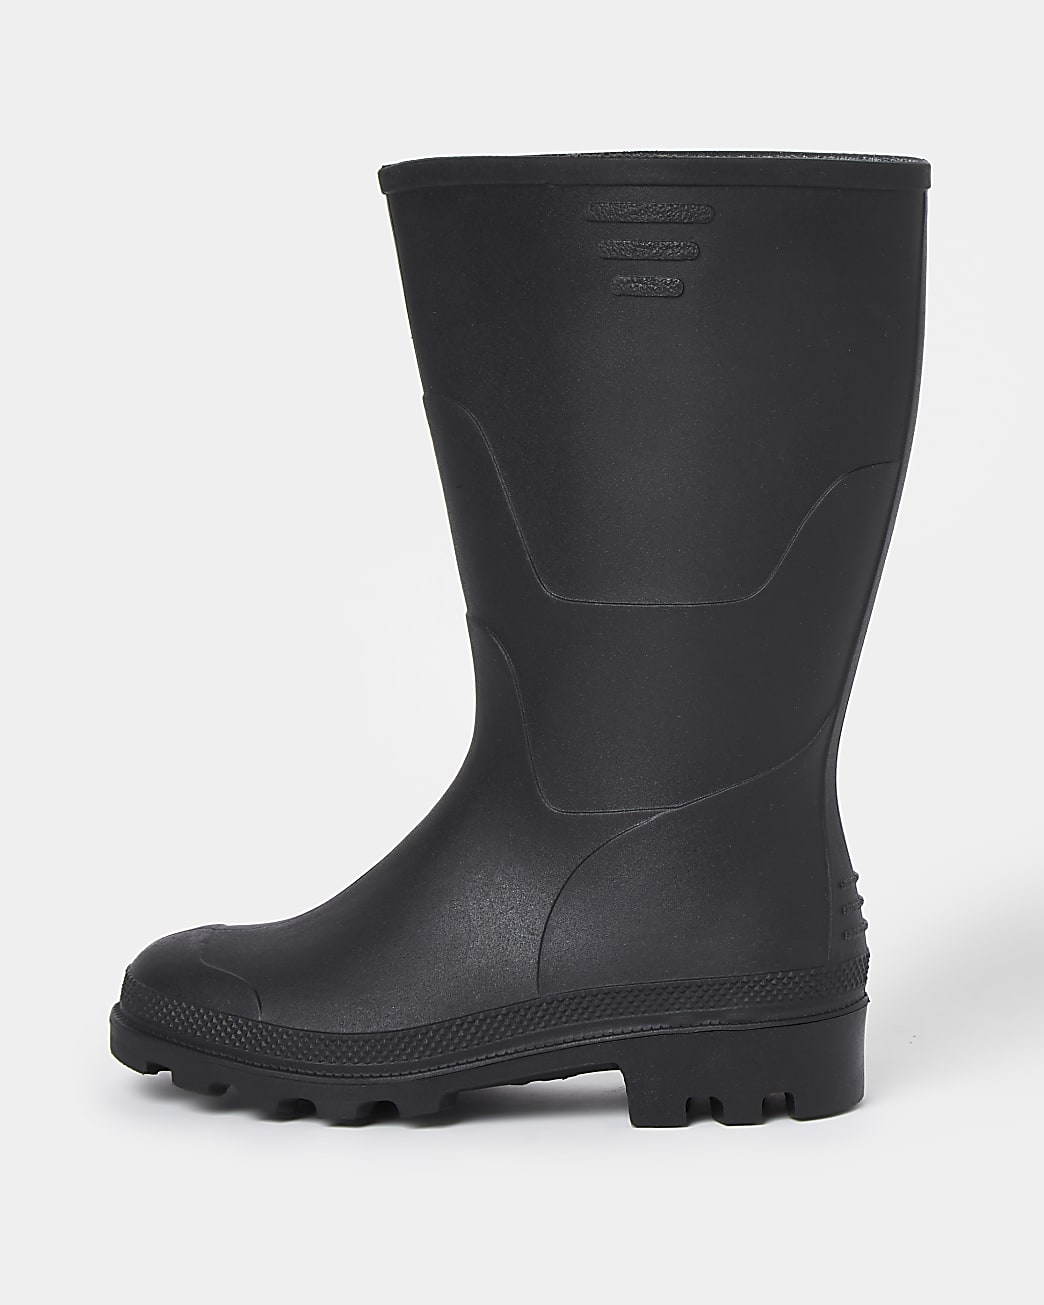 Black welly boots